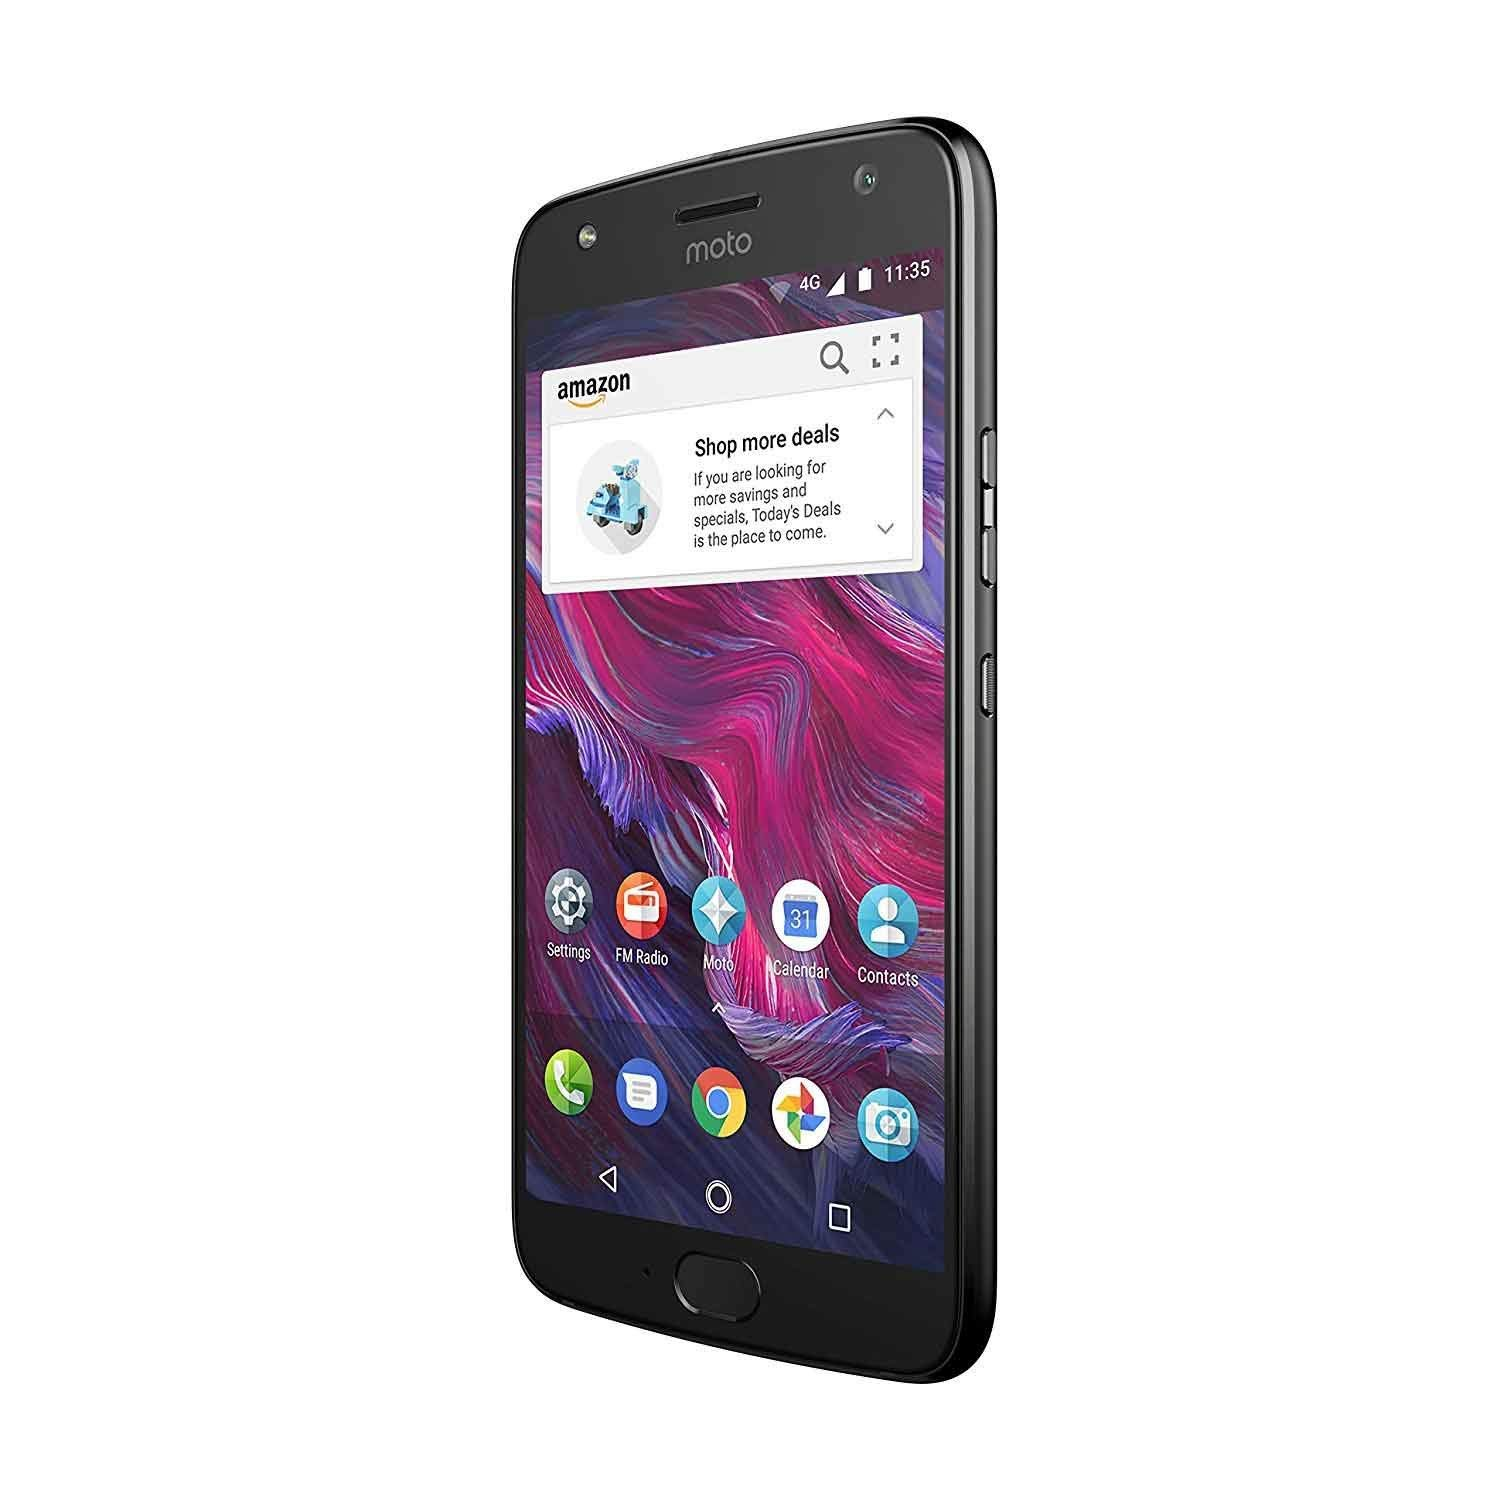 Moto X (4th Generation) - with Amazon Alexa hands-free – 32 GB - Unlocked – Super Black - Prime Exclusive by Motorola (Image #4)